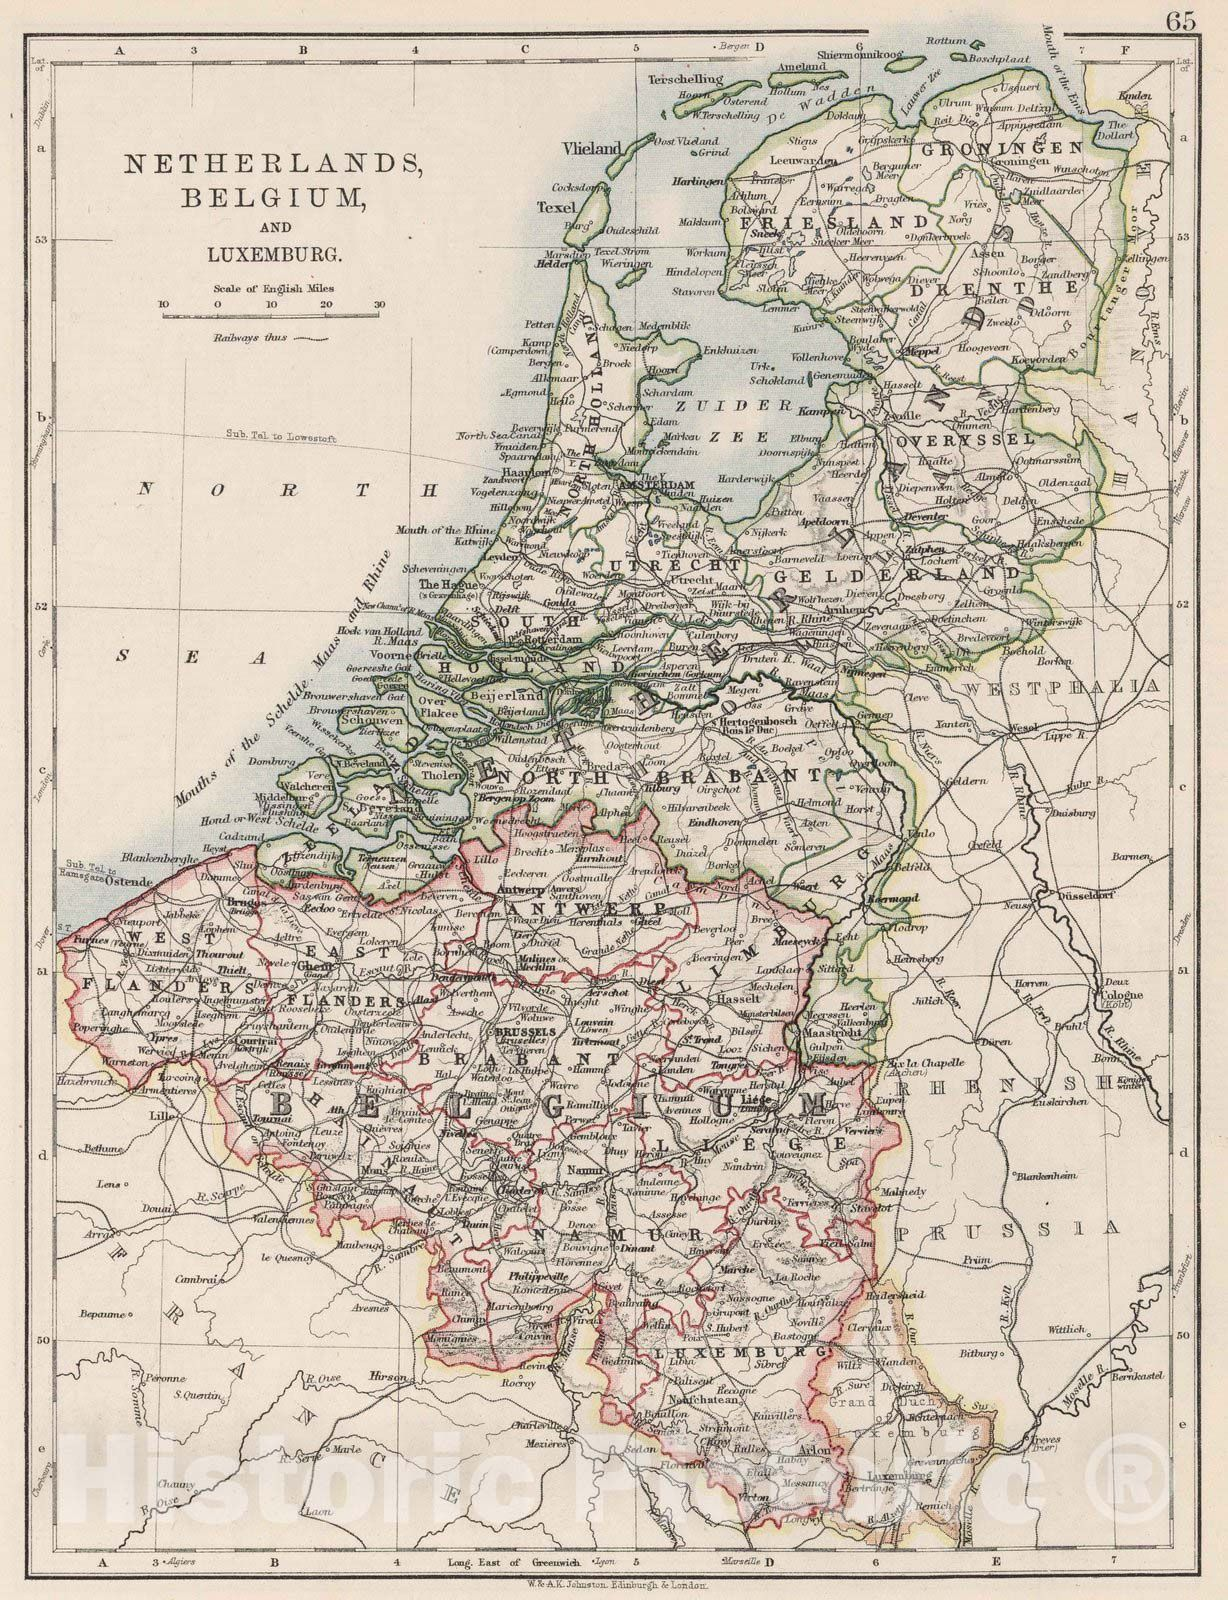 <p>1906 Netherlands, Belgium, and Luxemburg (Luxembourg). </p>